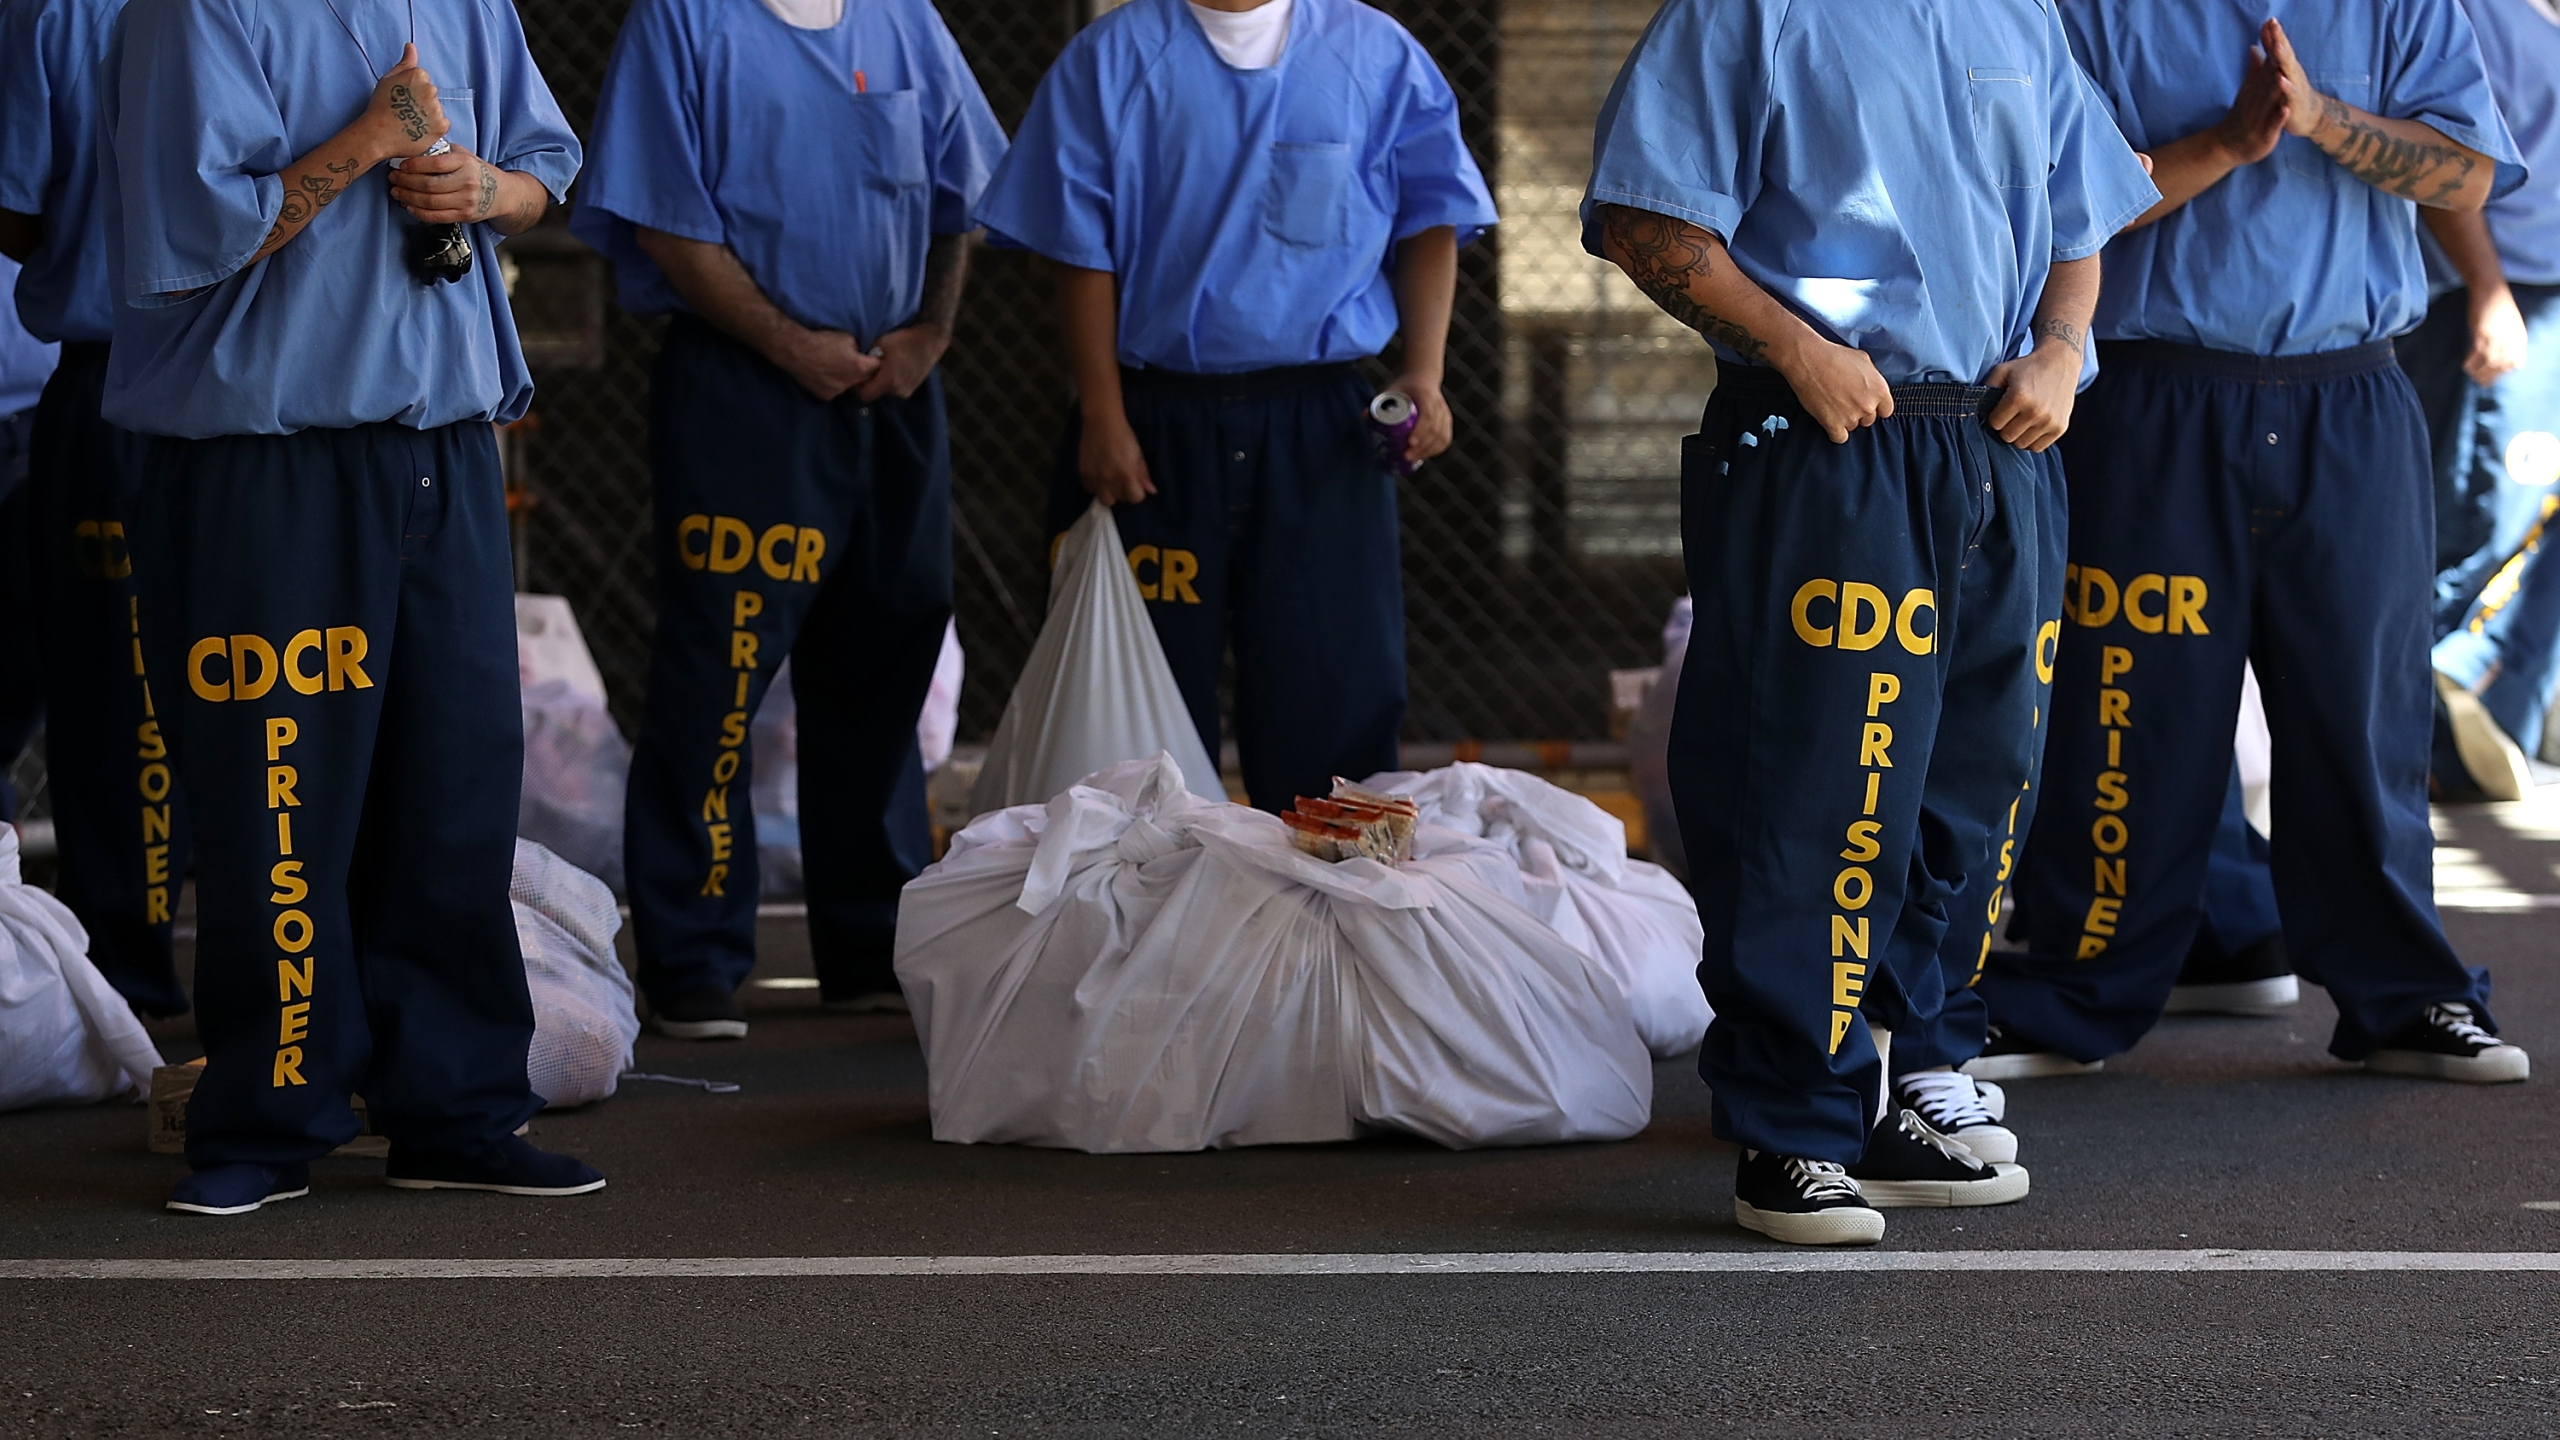 Inmates at San Quentin State Prison wait in line on Aug. 15, 2016. (Justin Sullivan / Getty Images)